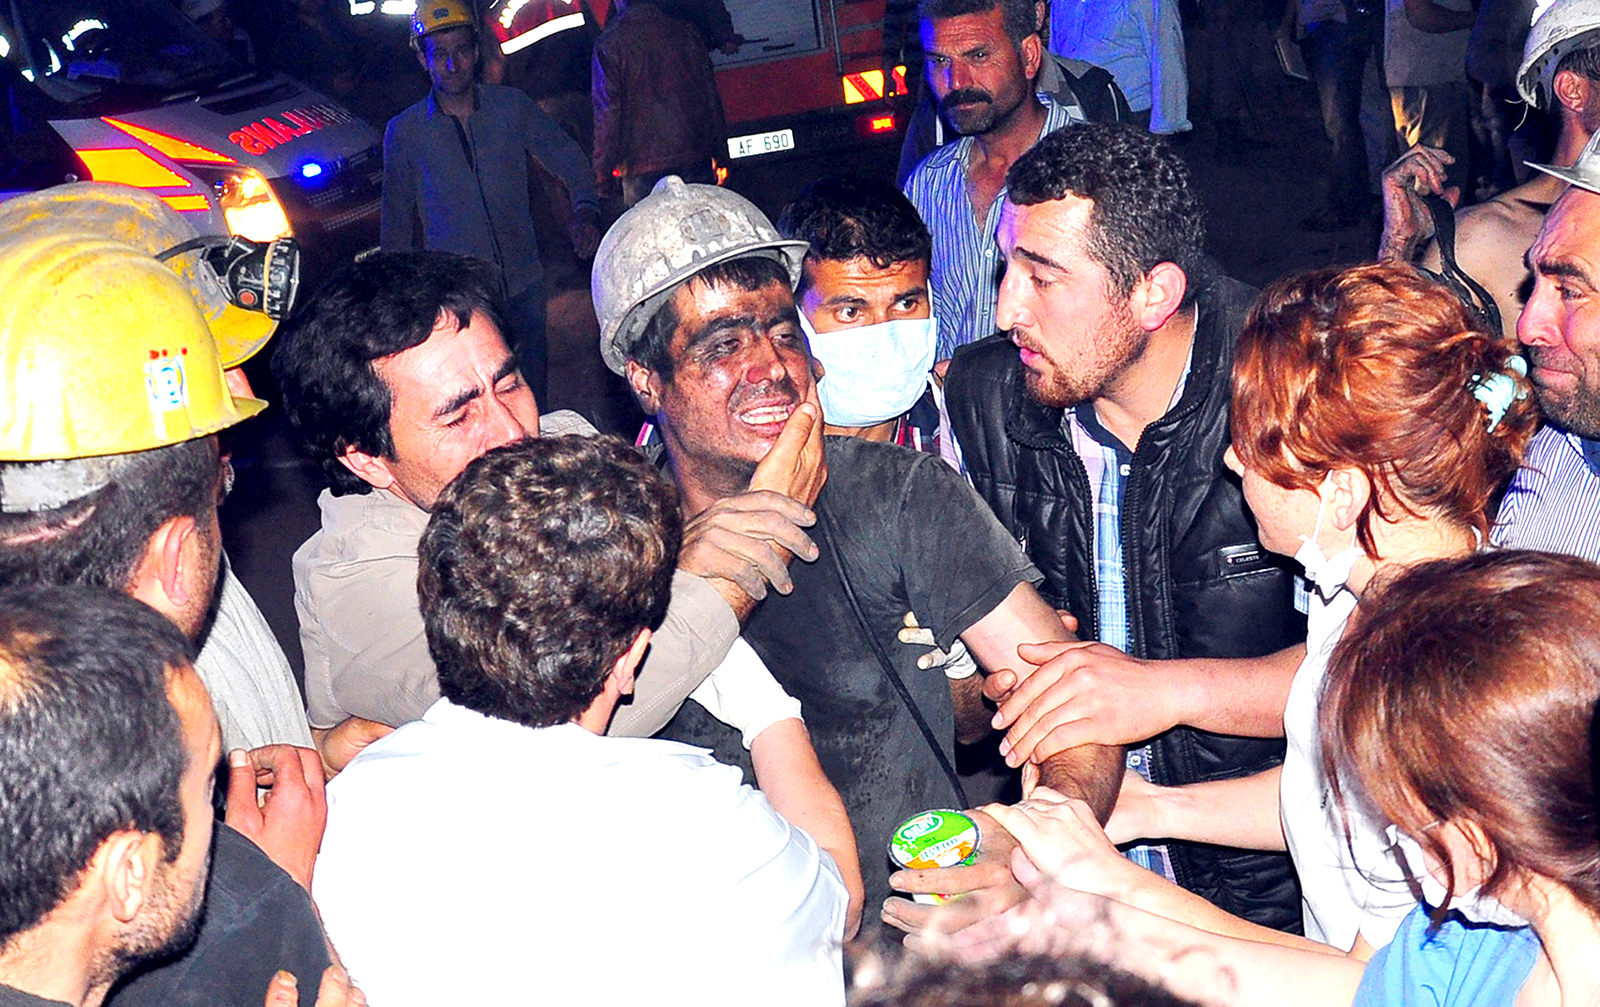 A rescued miner surrounded by relatives, medics and other miners cries after being rescued from a coal mine he was in trapped in Soma, a district in Turkey's western province of Manisa May 13, 2014. Photo: Reuters